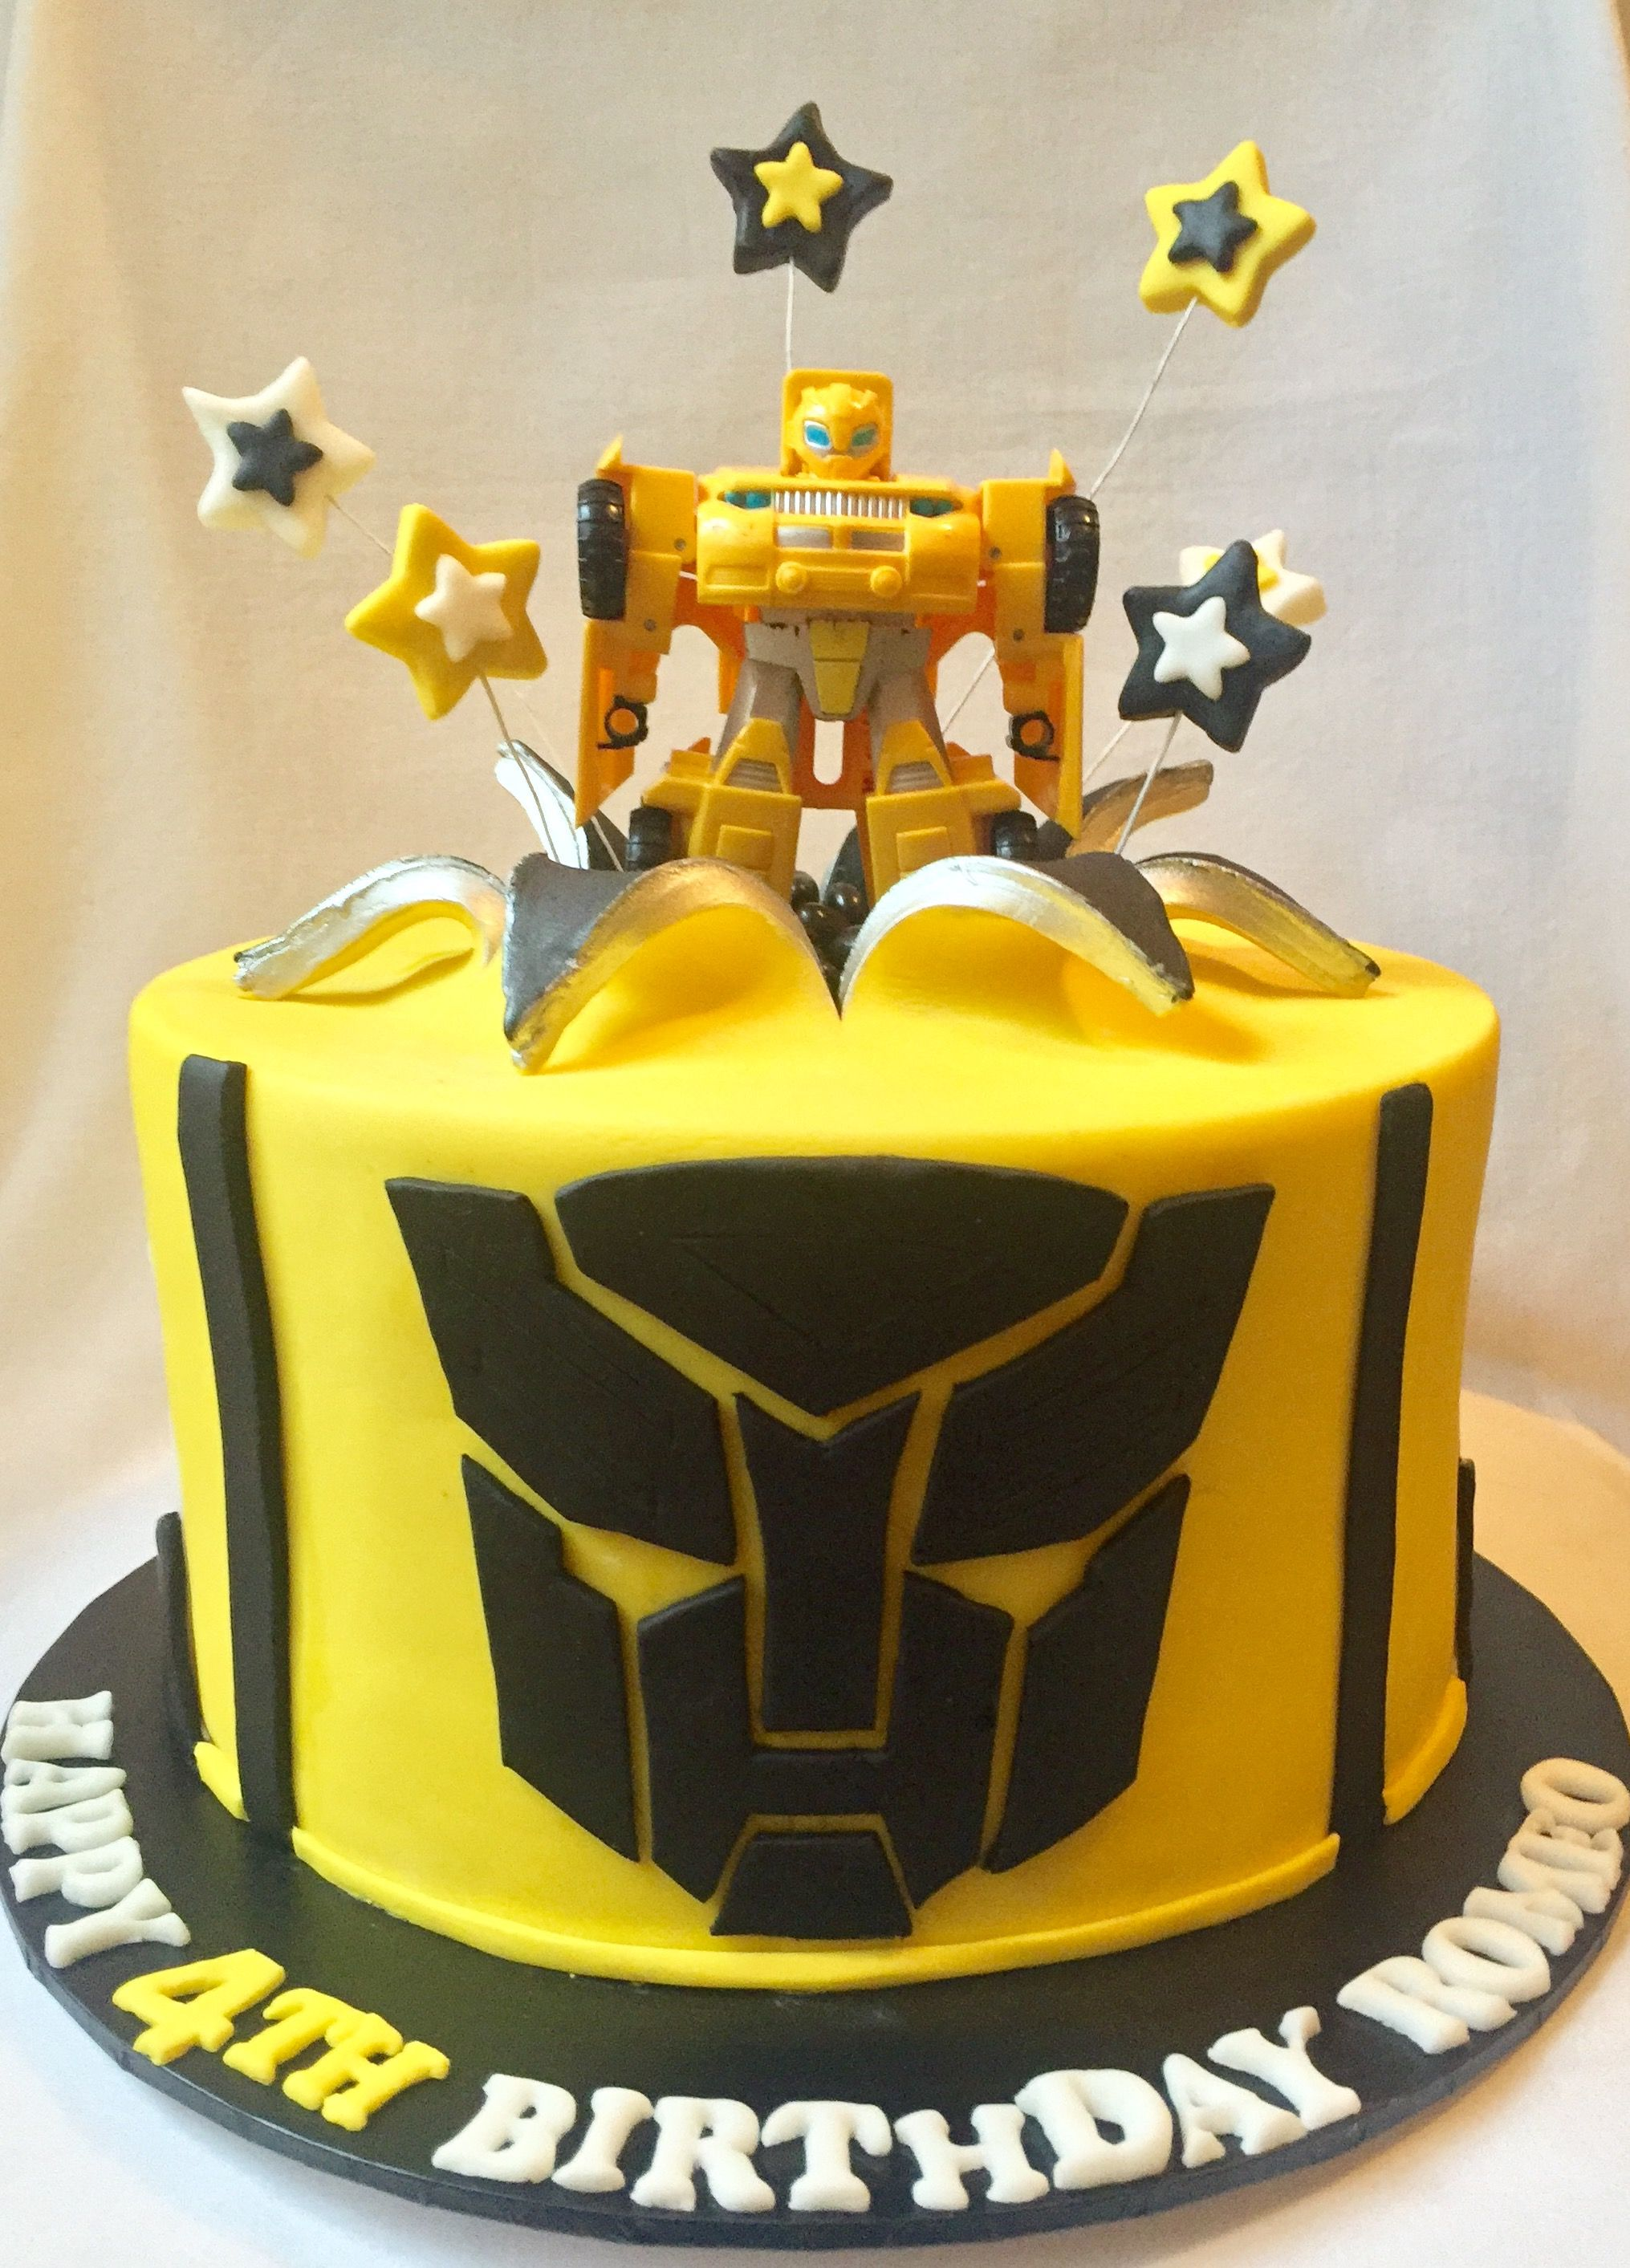 Marvelous Bumble Bee Transformer Cake By Cupcakes For Your Cupcake Sydney Funny Birthday Cards Online Alyptdamsfinfo